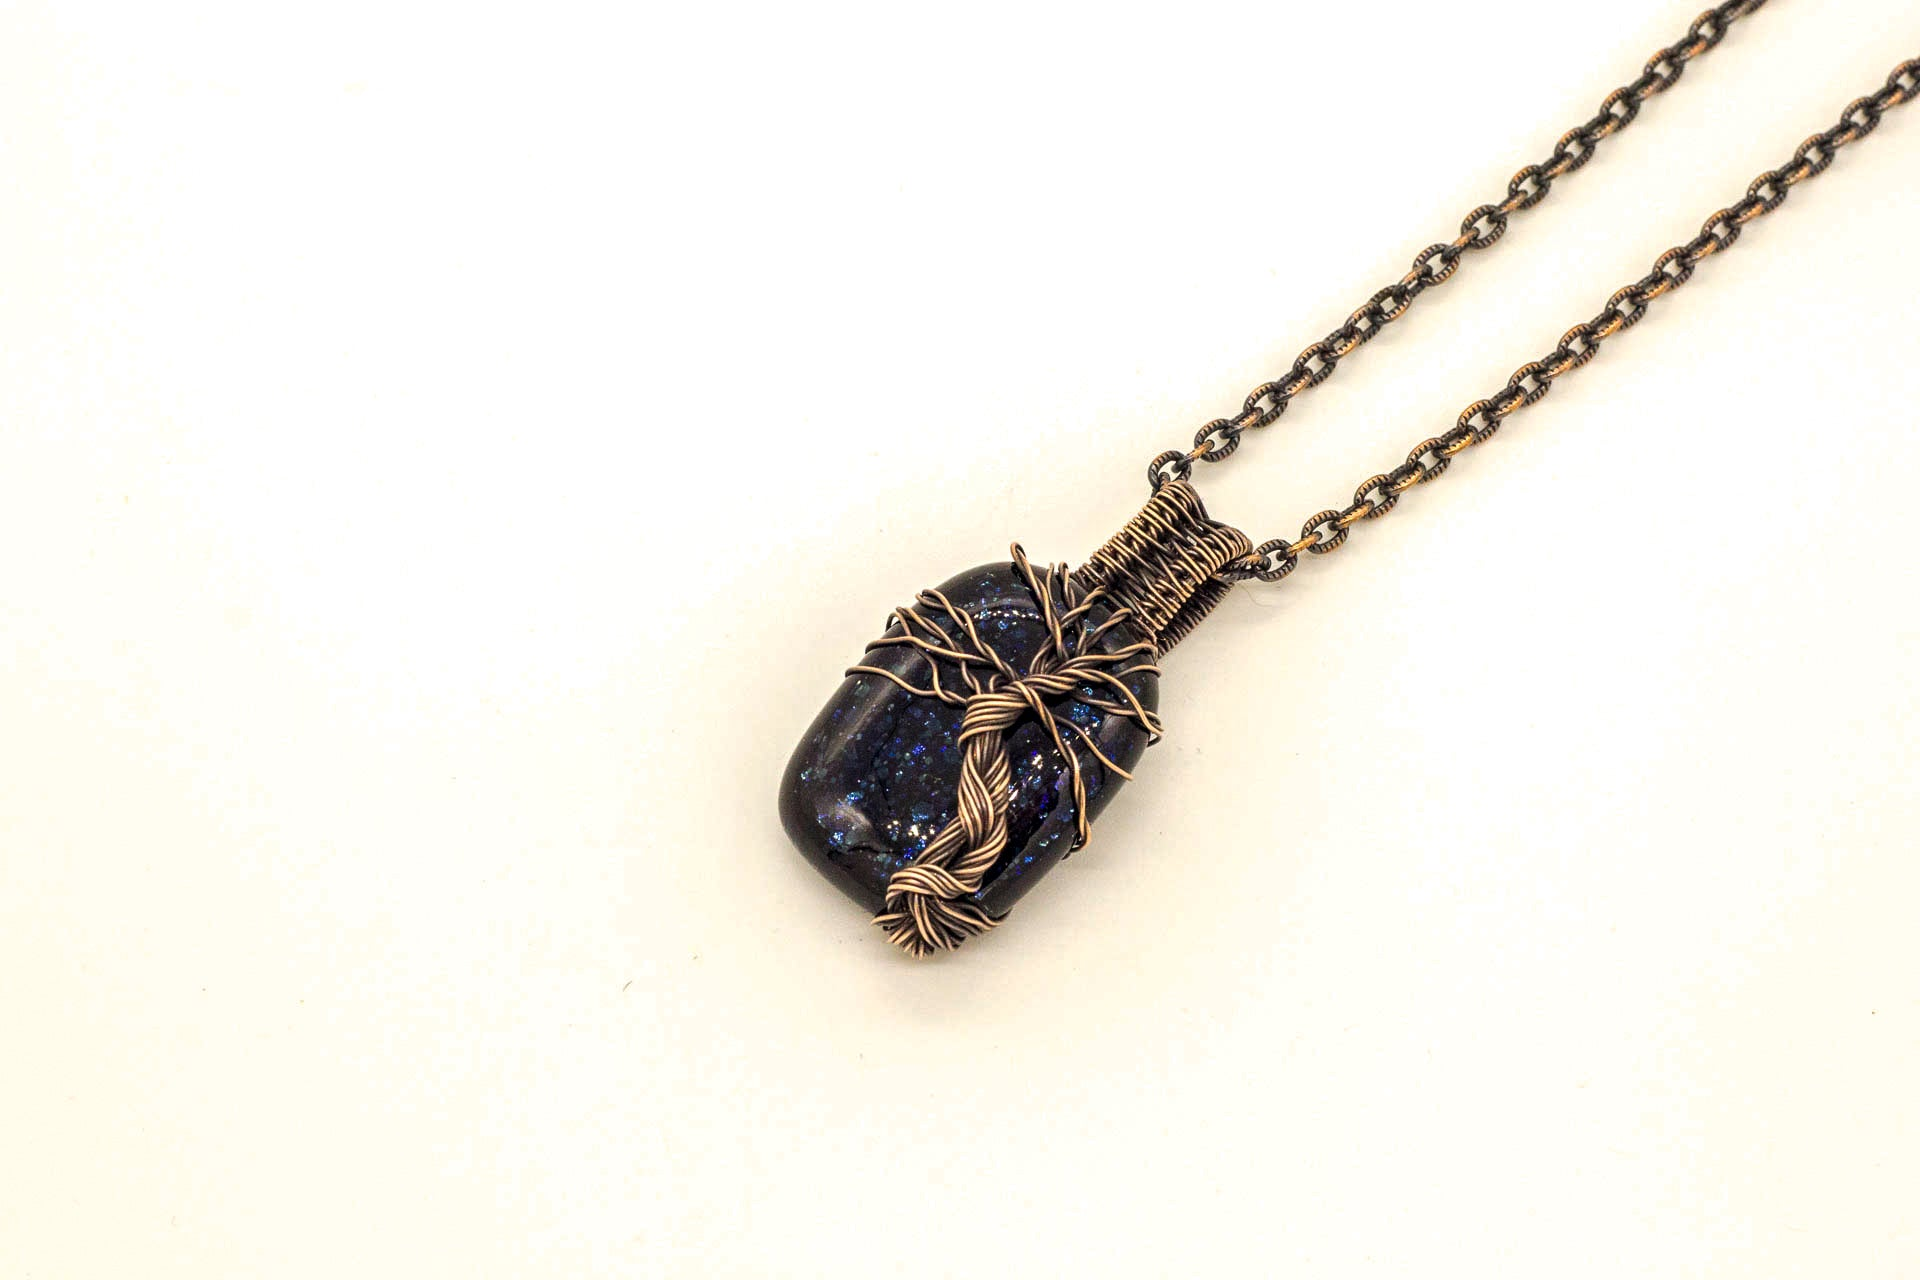 copper-wire-wrapped-tree-of-life-pendant-blue-glitter-dichroic-fused-glass-nymph-in-the-woods-jewelry